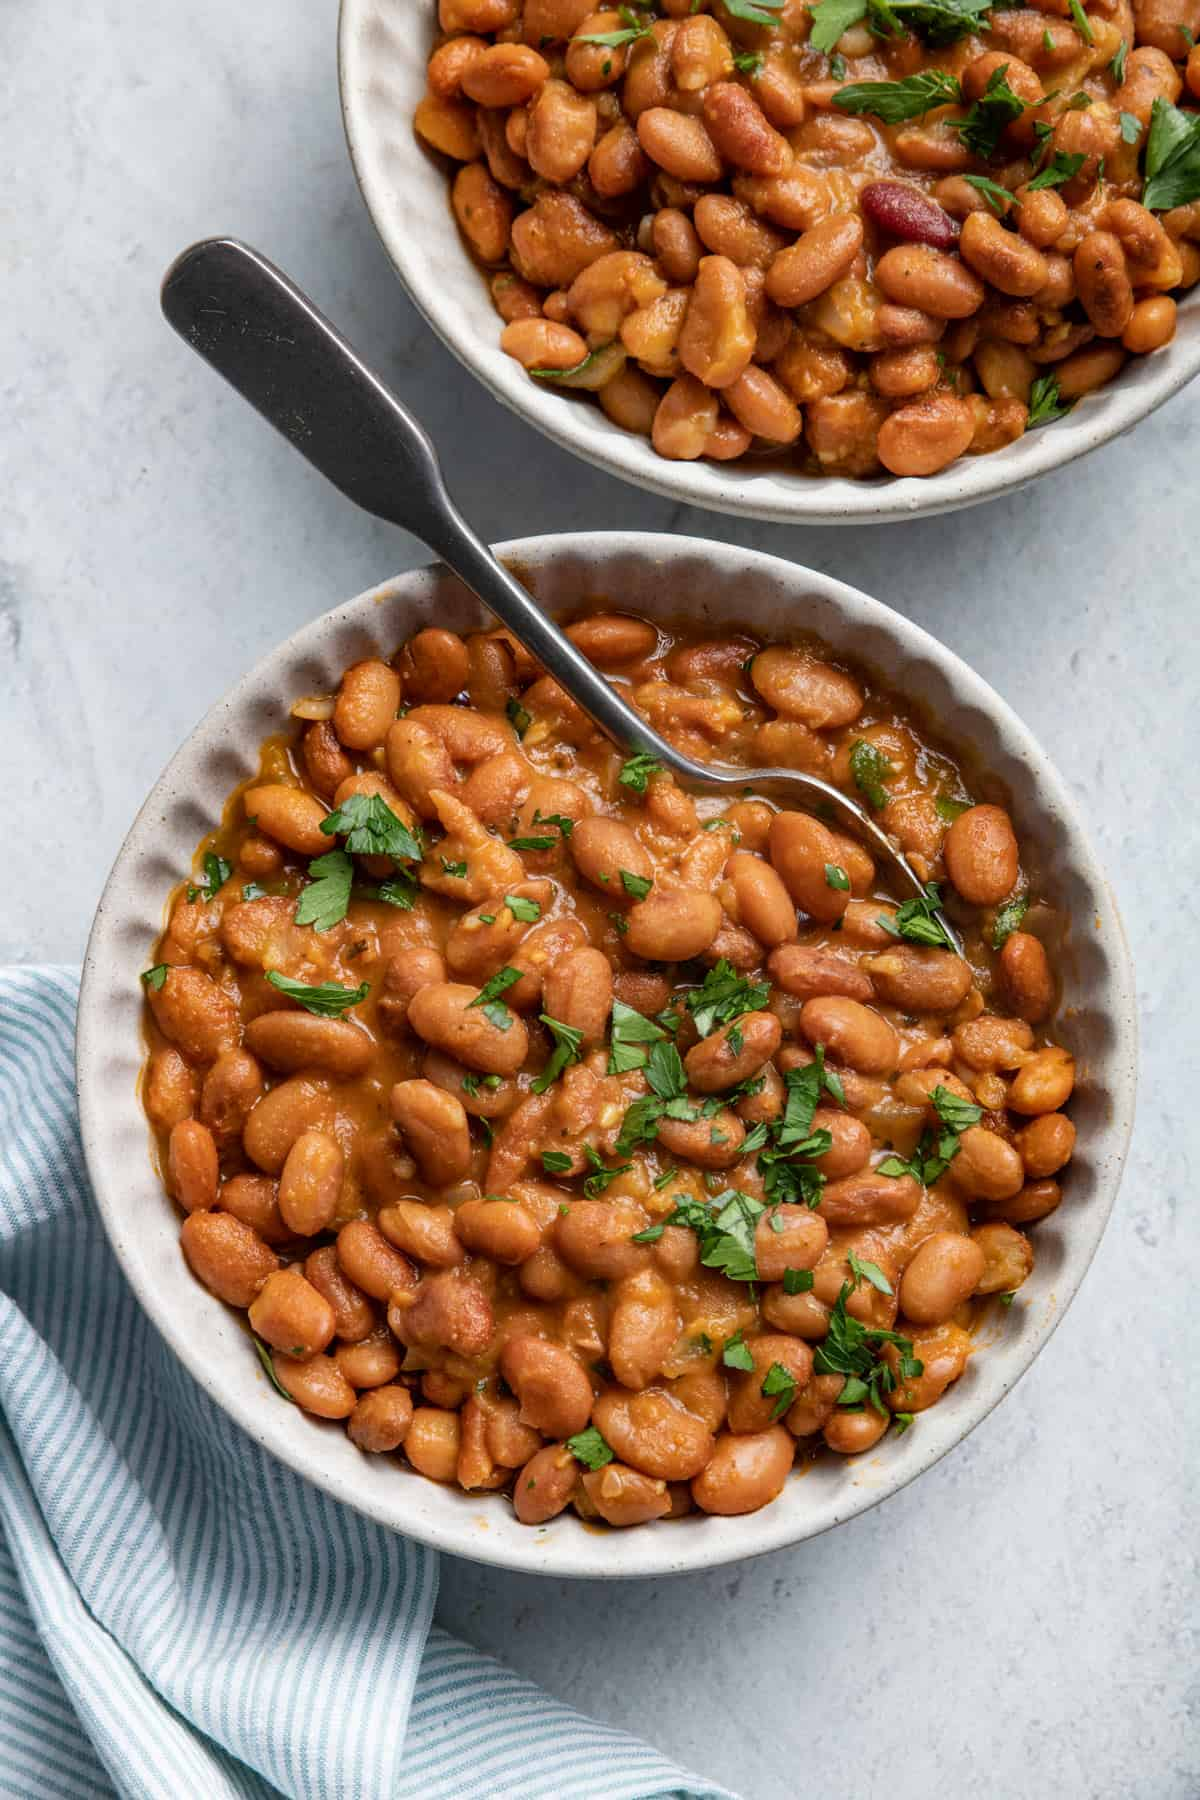 Two bowls of baked beans